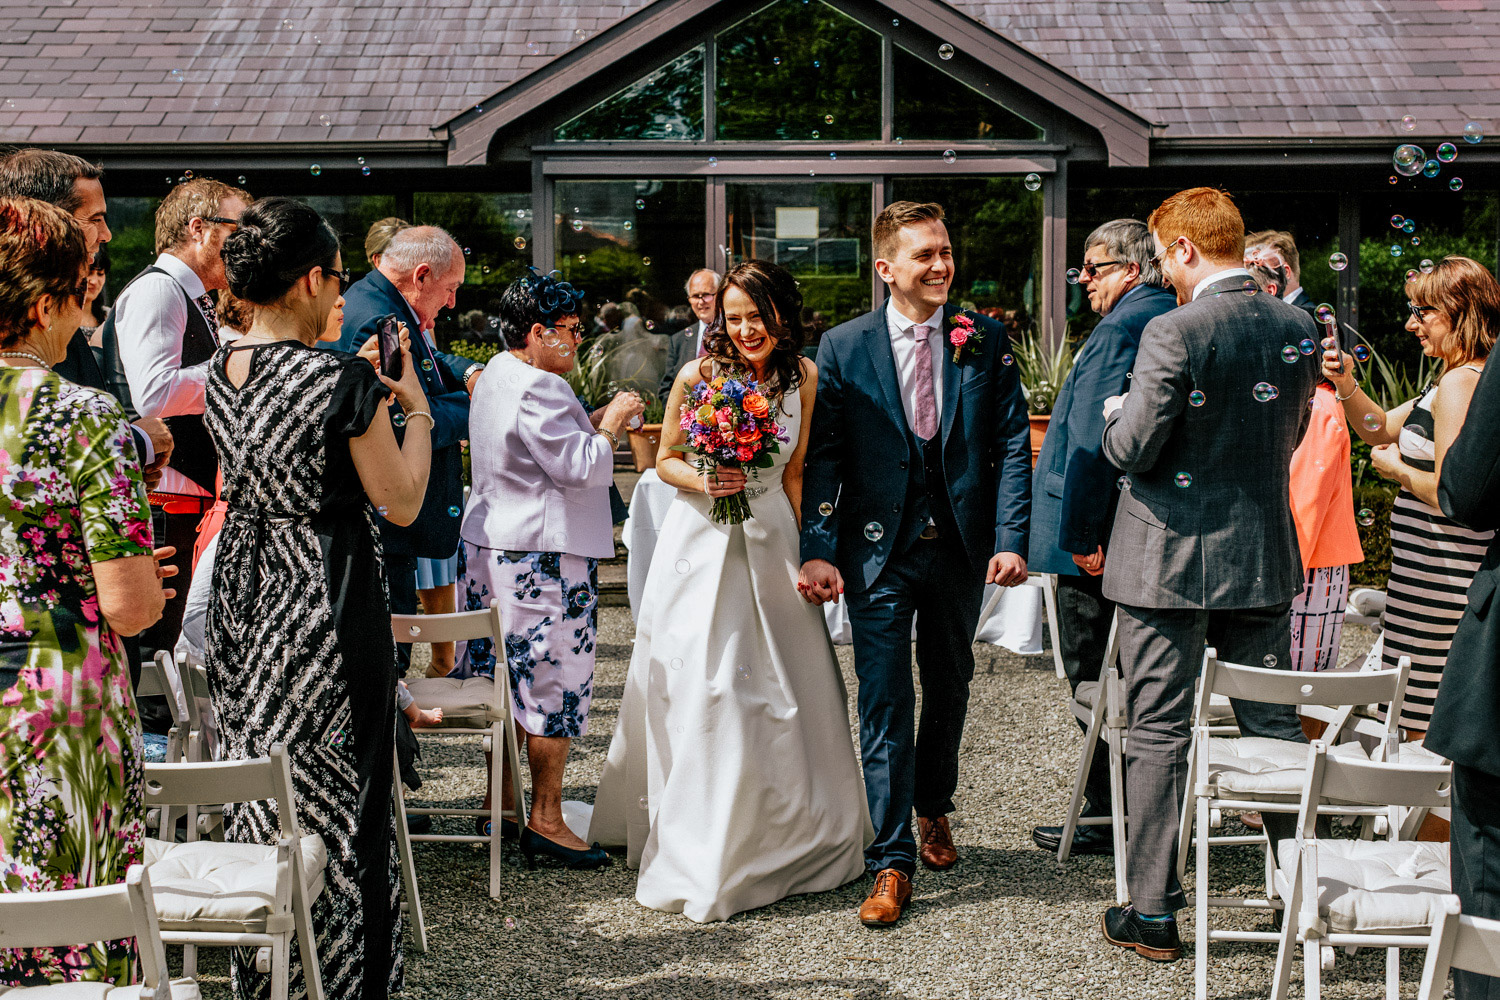 Inish Beg walled garden wedding